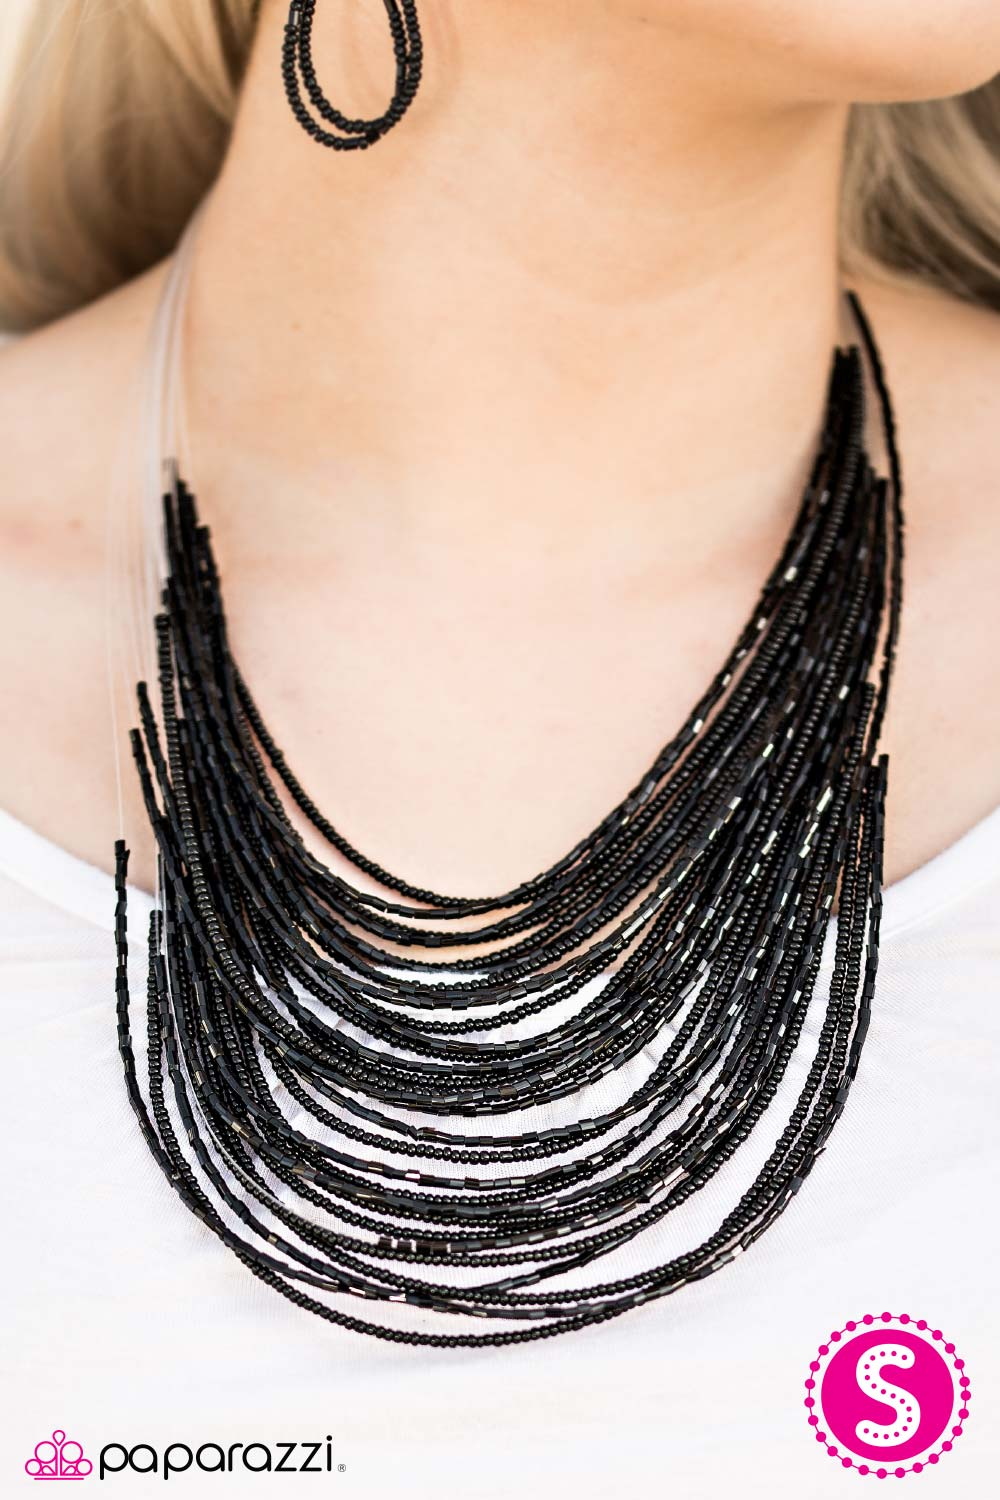 Black Seed Bead Necklace Images Paparazzi Accessories Starlight Serenade Jpg